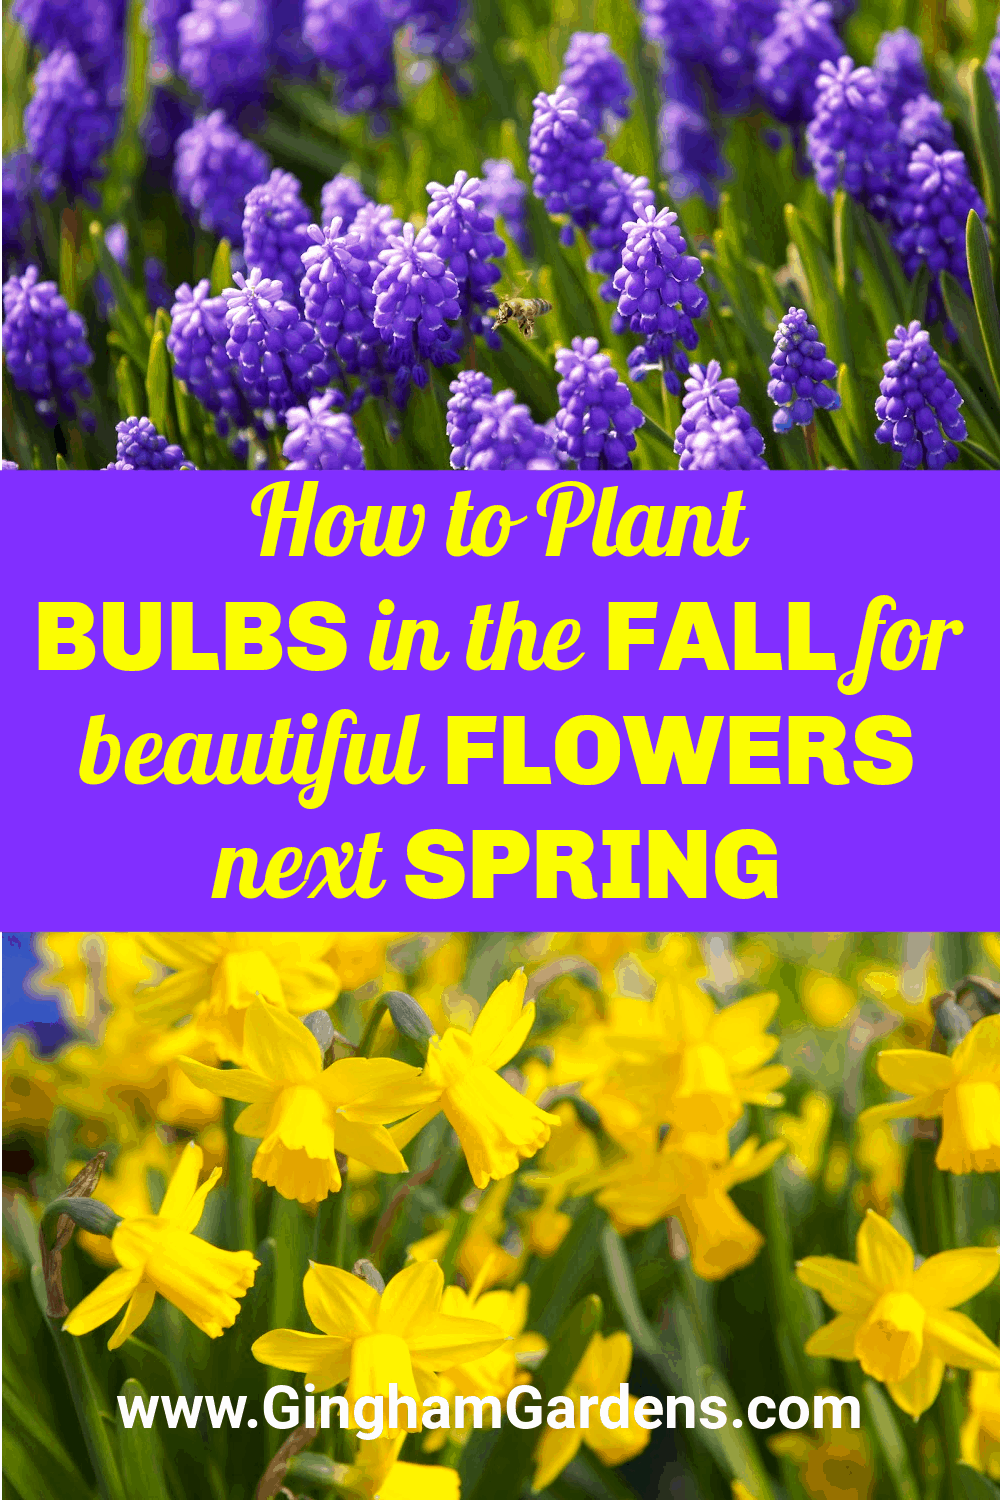 Images of spring flowers with text overlay - How to Plant bulbs in the Fall for beautiful flowers next spring.